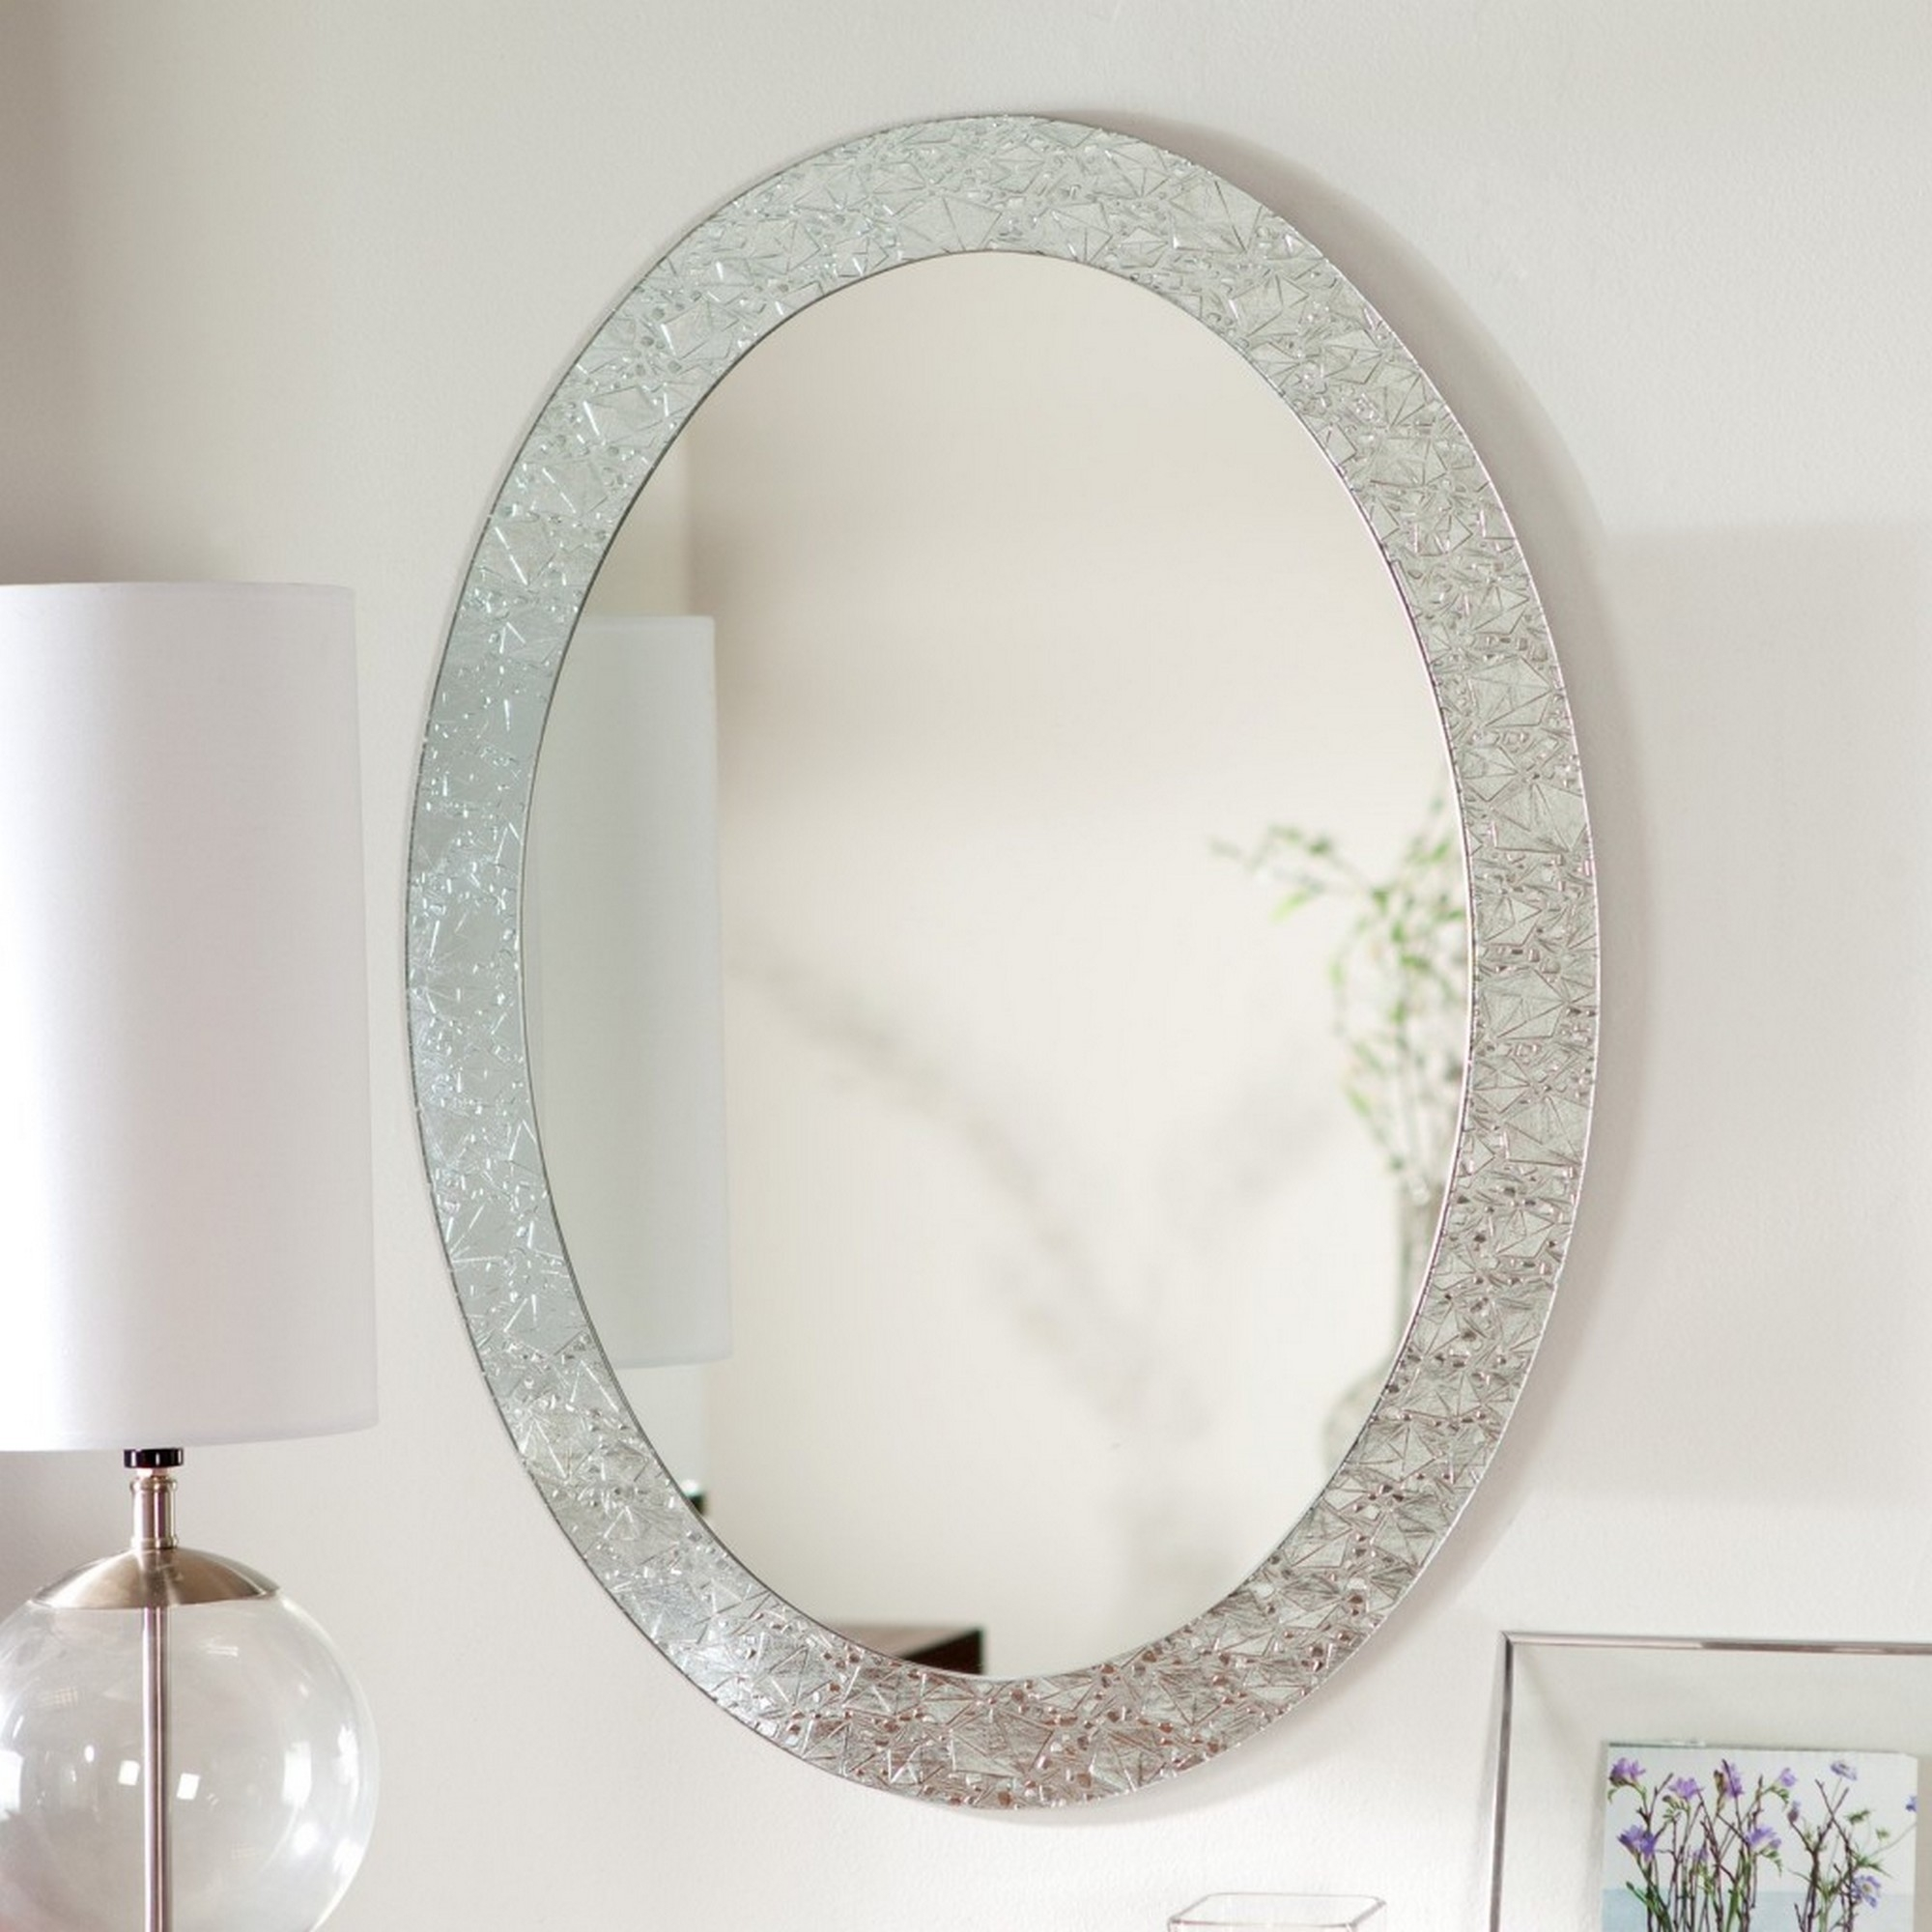 Cool Mirrors For Bathrooms 15 Photos Unusual Mirrors For Bathrooms Mirror Ideas